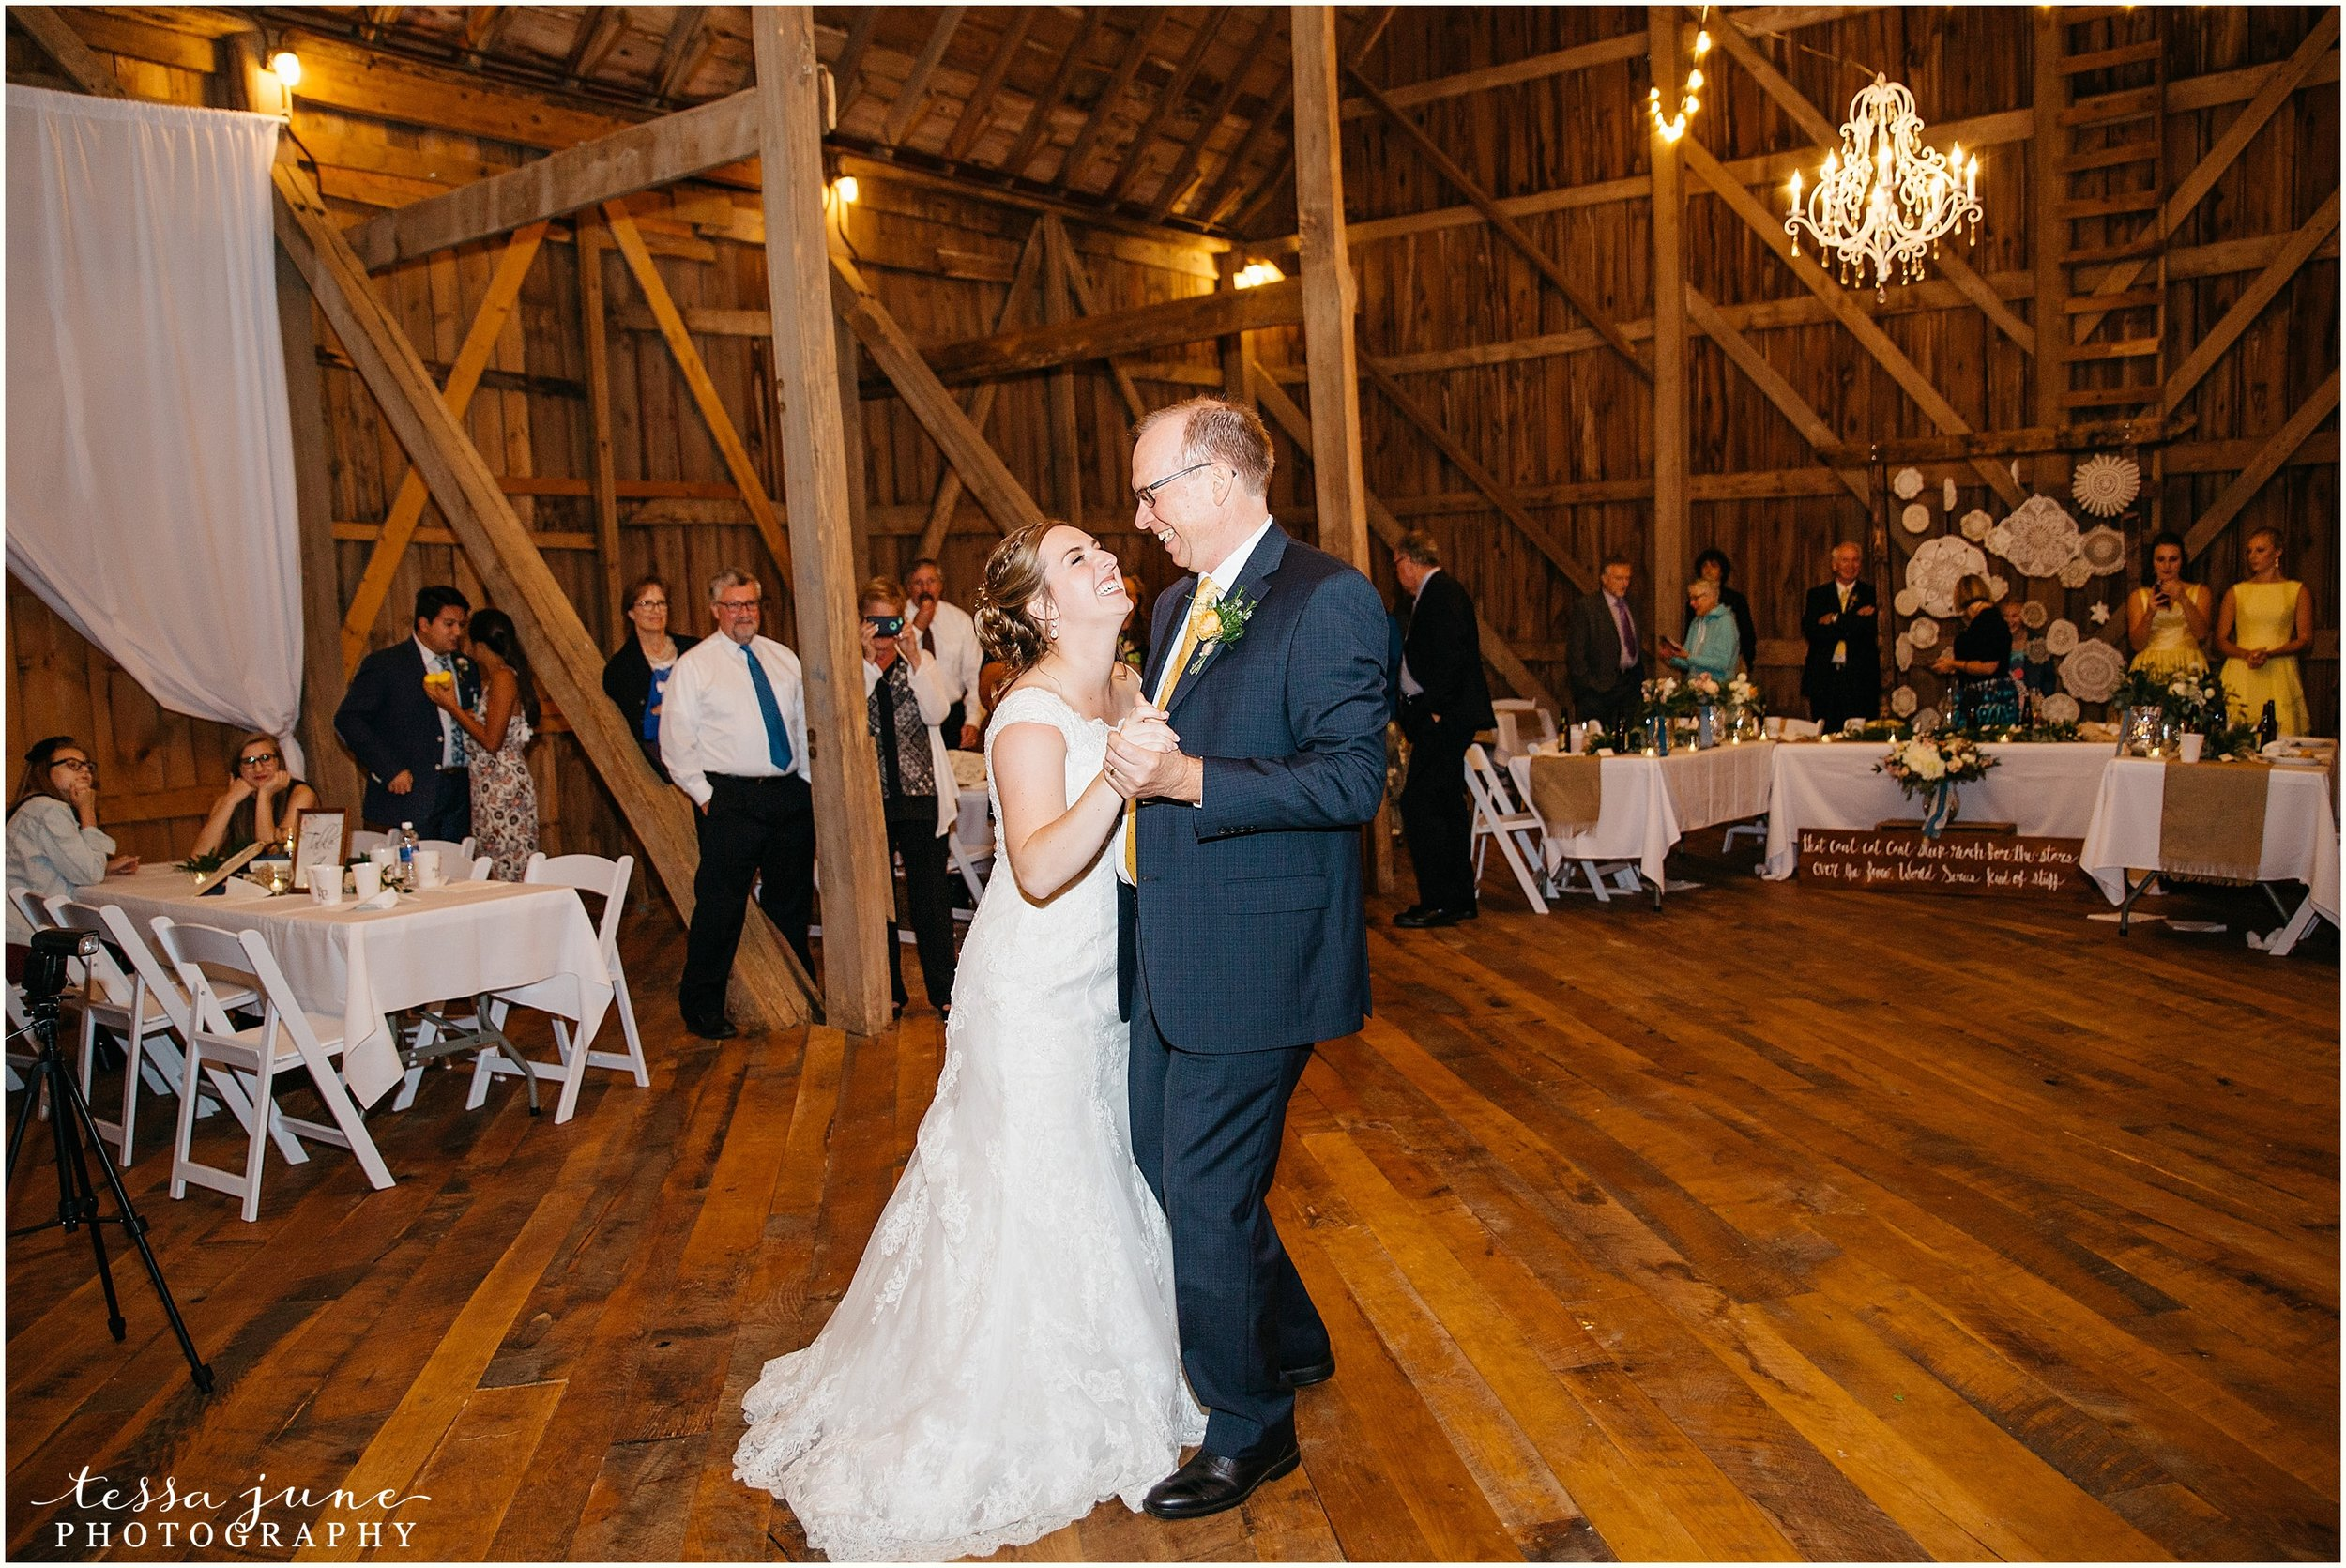 birch-hill-barn-glenwood-city-wisconsin-st-cloud-wedding-photographer-5461.jpg